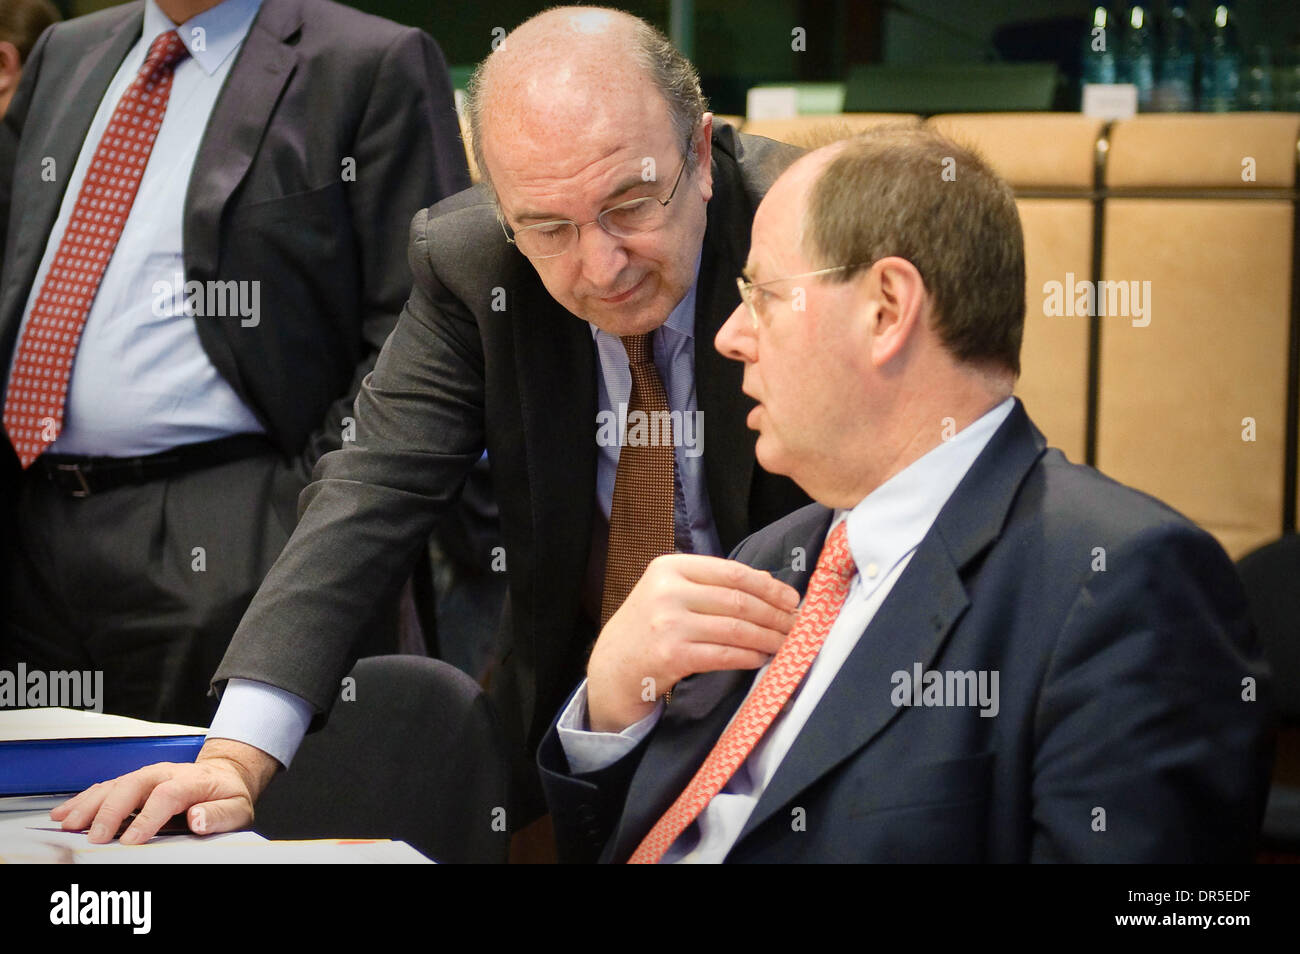 Mar 09, 2009 - Brussels, Belgium - European Monetary Affairs Commissioner, Spanish, JOAQUIN ALMUNIA chats with German Finance Minister PEER STEINBRUECK (R) at the start of an Eurogroup Finance ministers meeting at the European council headquarters. (Credit Image: © Wiktor Dabkowski/ZUMA Press) - Stock Image